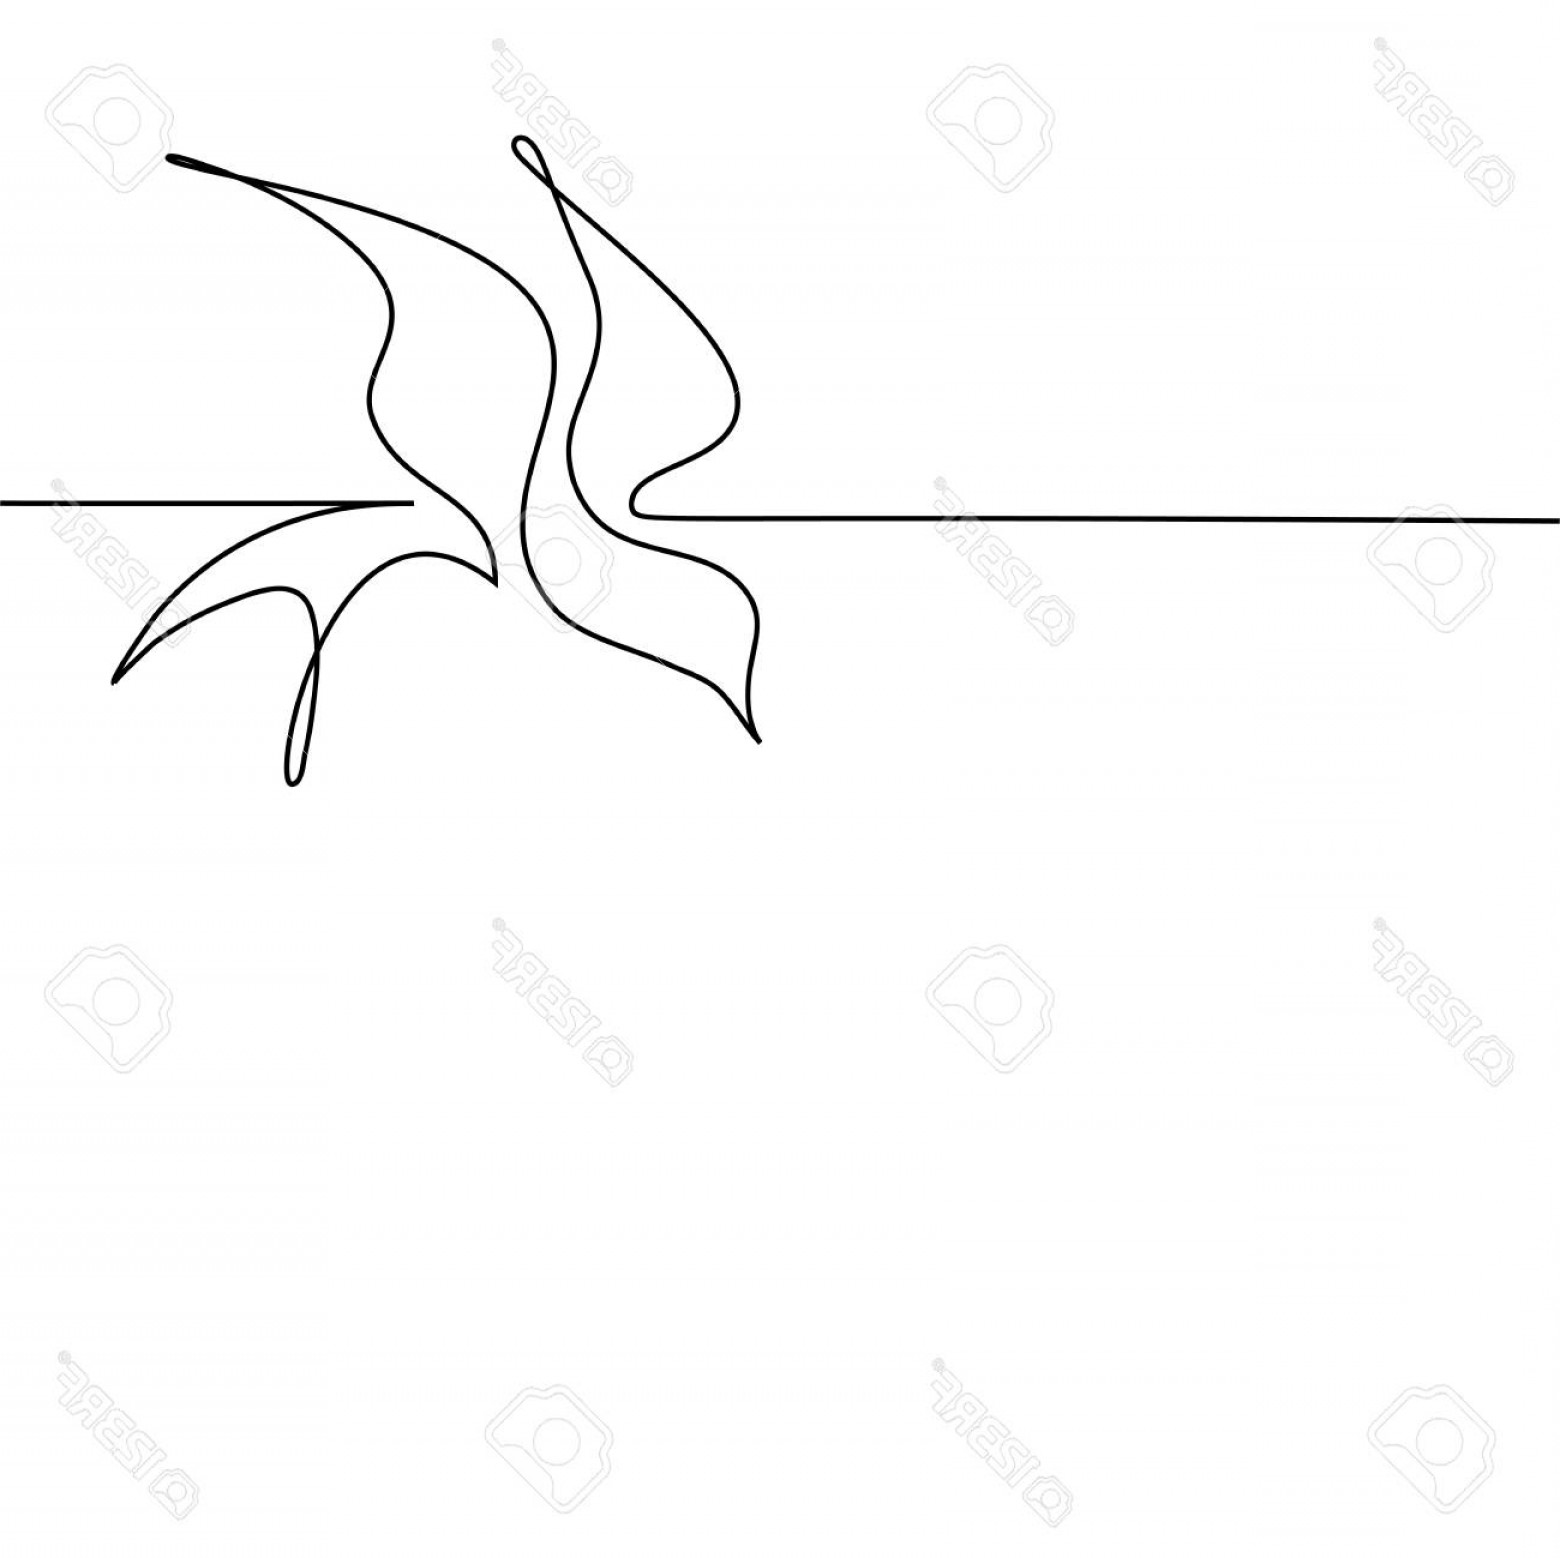 1560x1558 Photostock Vector Continuous One Line Drawing Flying Bird Logo